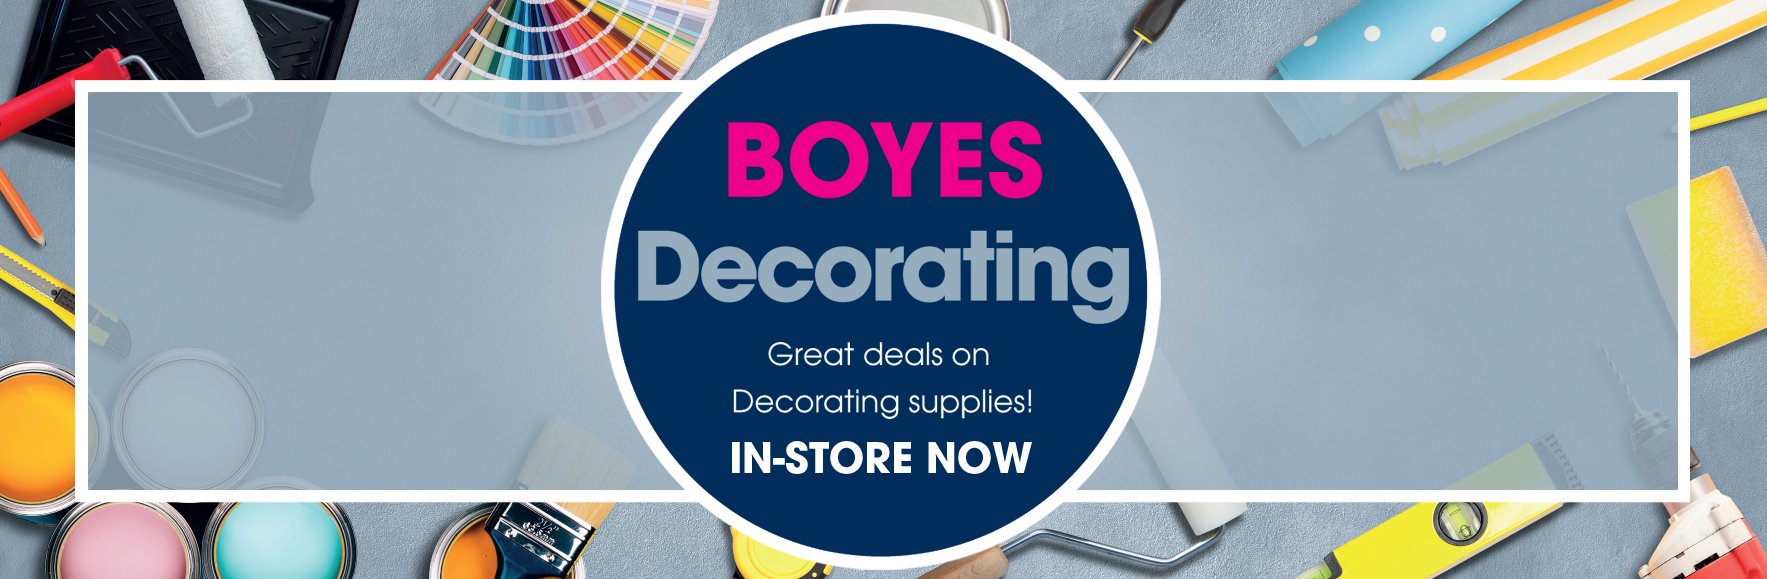 Great deals on decorating supplies. In-store now